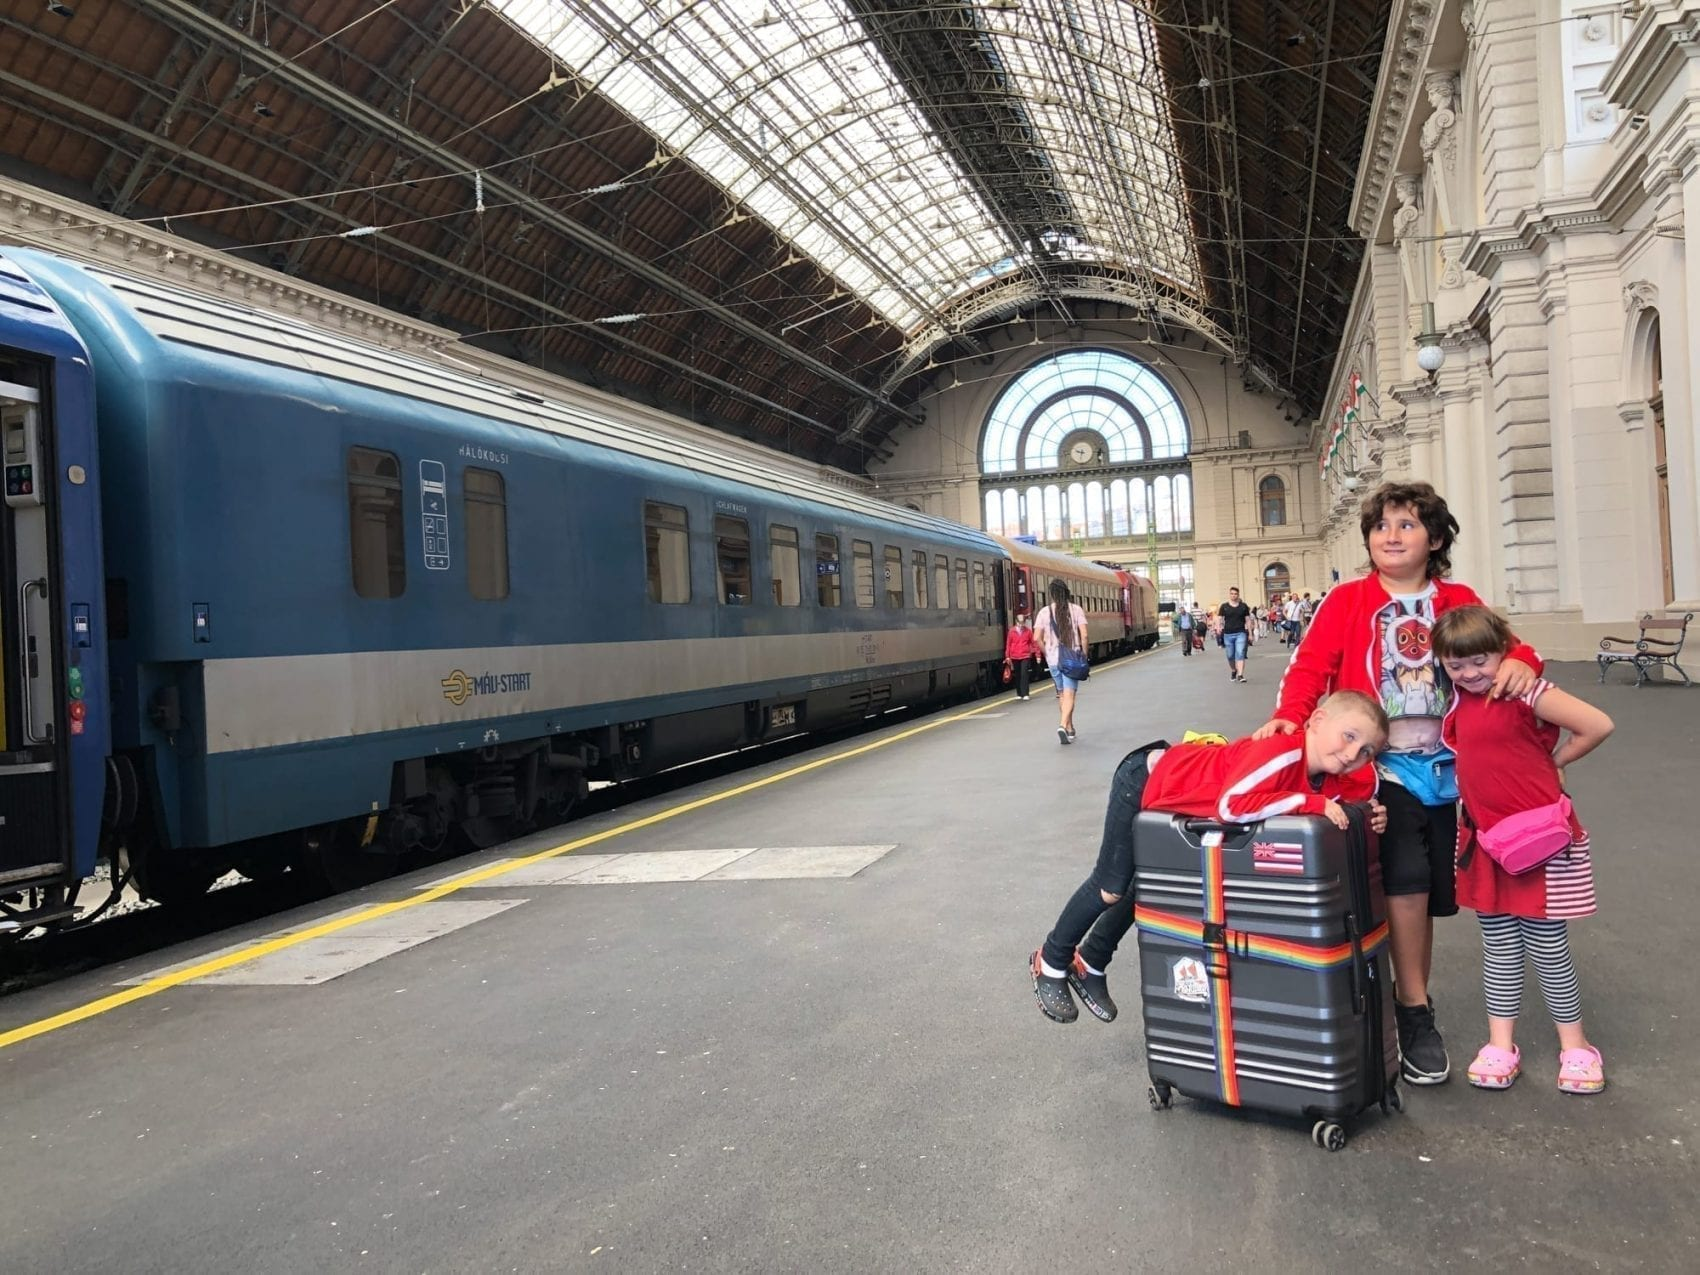 on the night train to budapest - the european sleeper train with children - image description: three children stand in the budapest train station with a train in the background and luggage around them